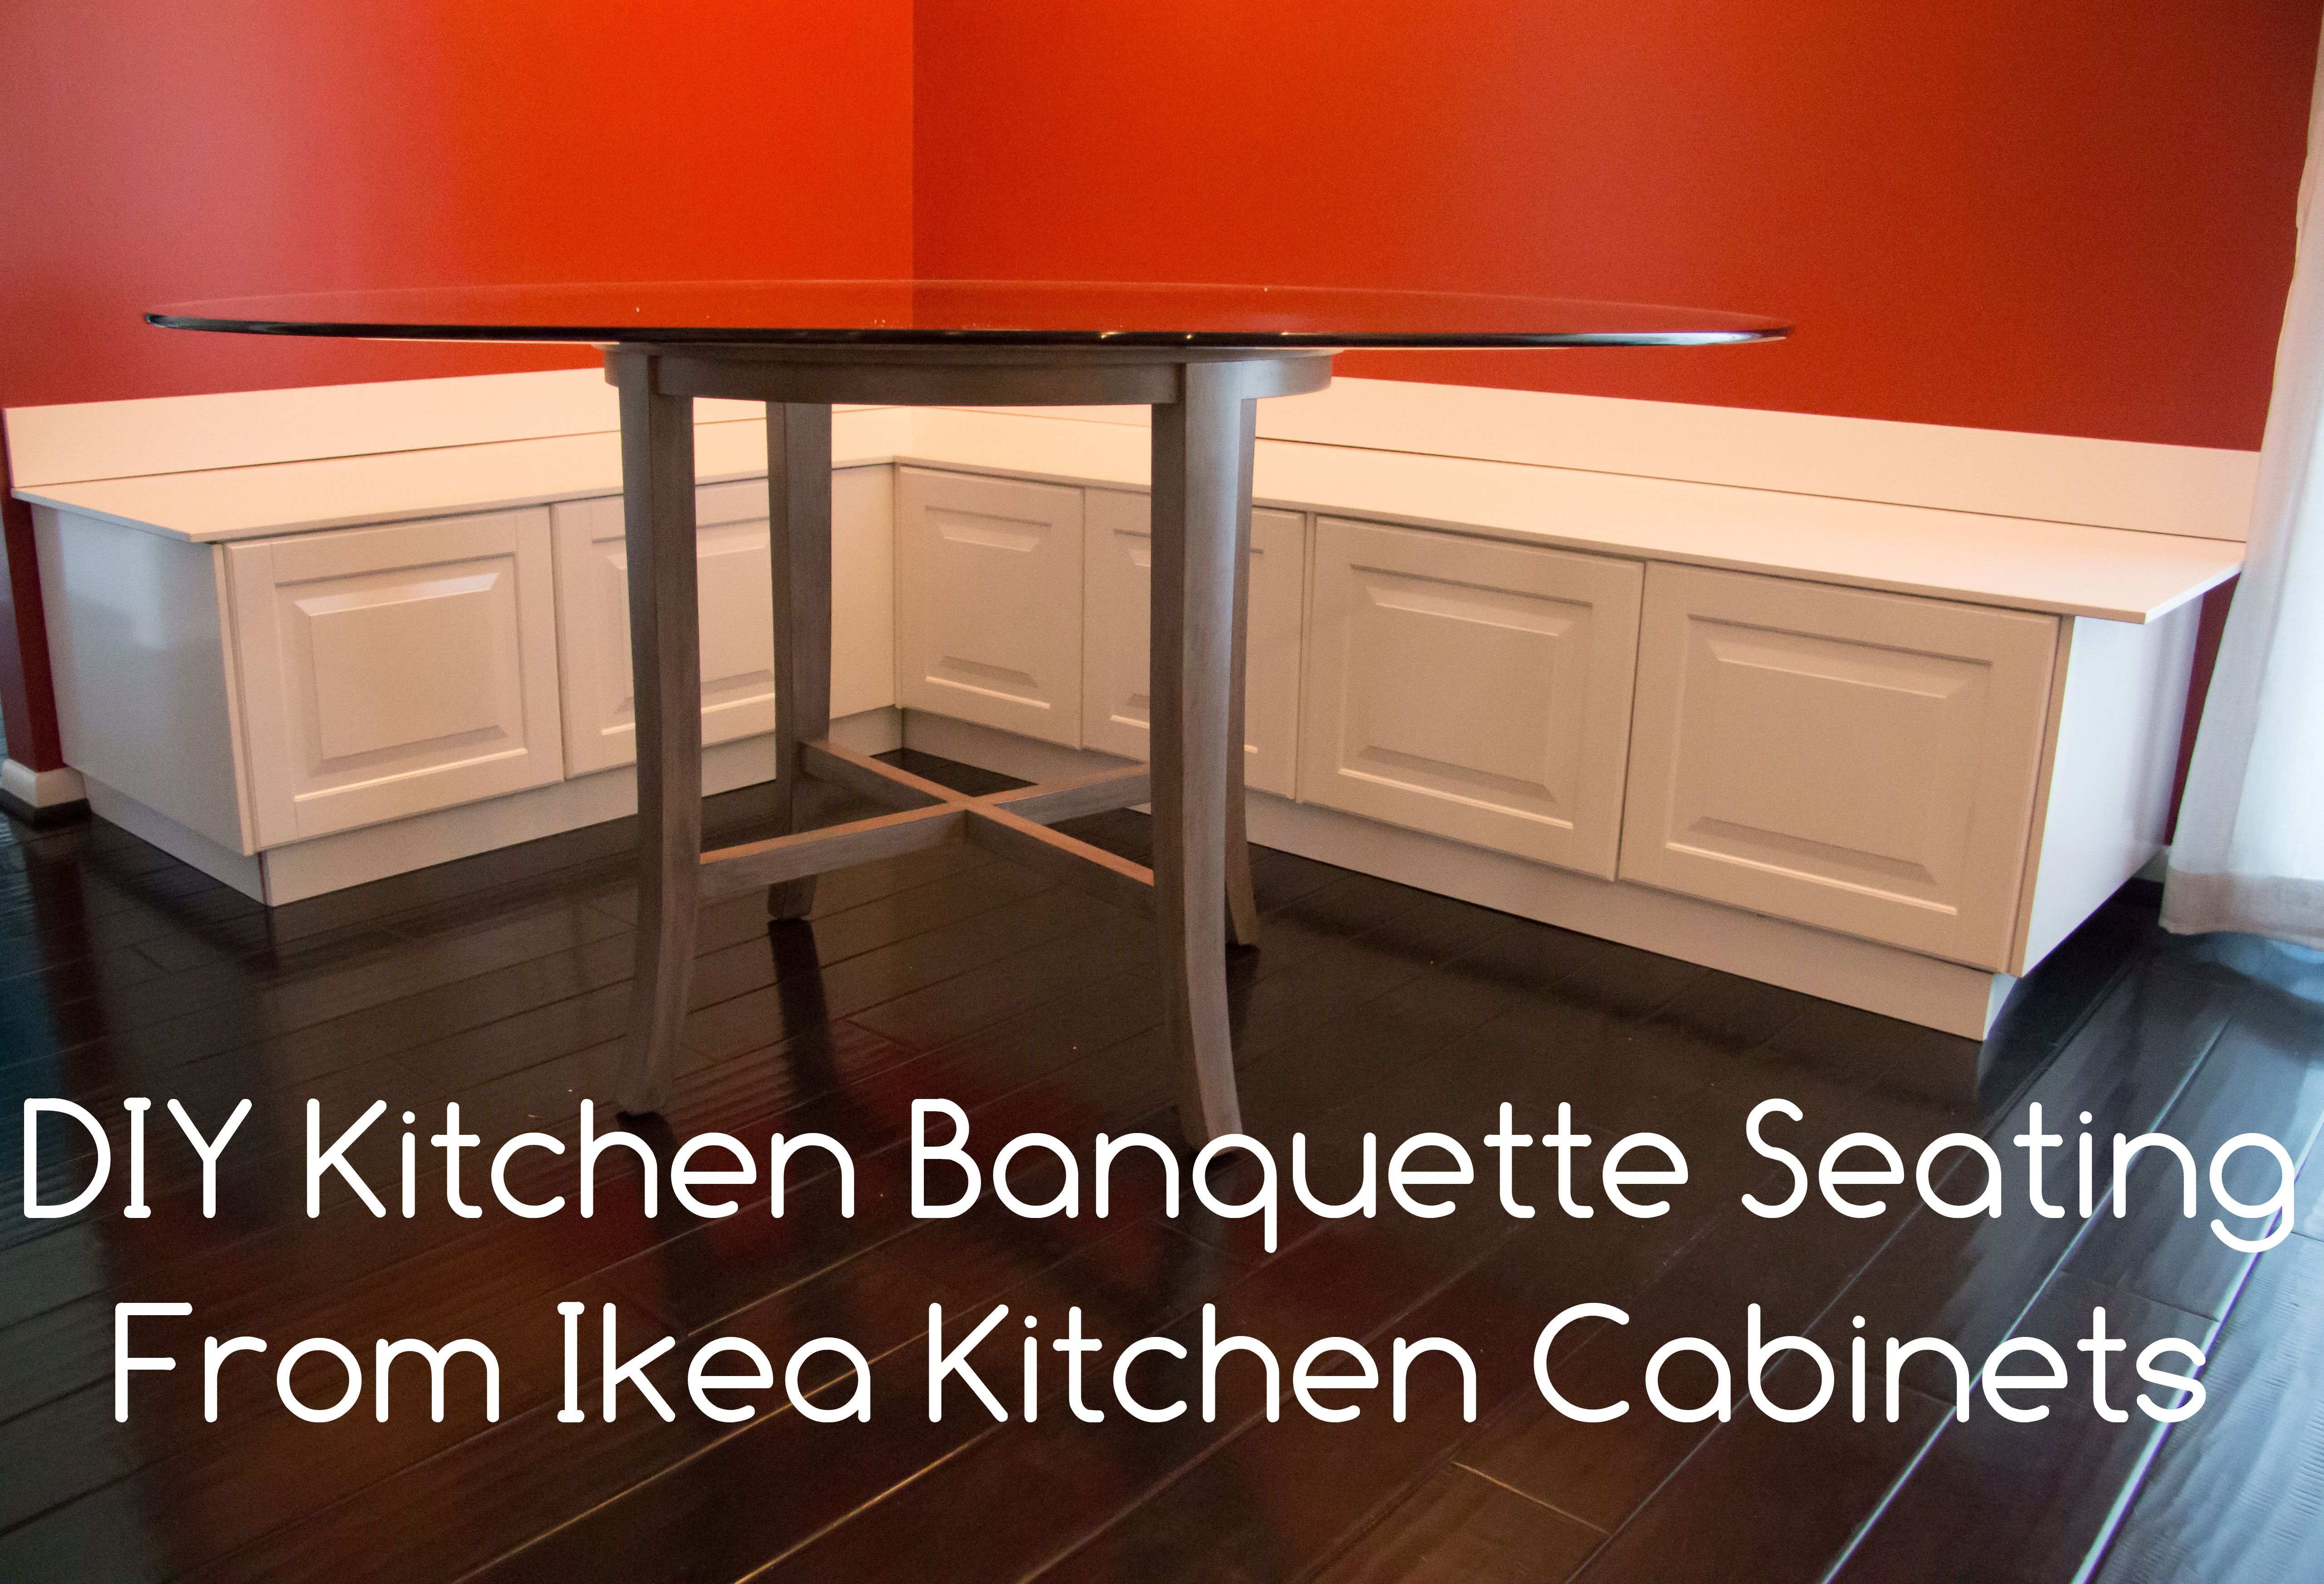 Kitchen Banquette Design Plans Diy Kitchen Banquette Bench Using Ikea Cabinets Ikea